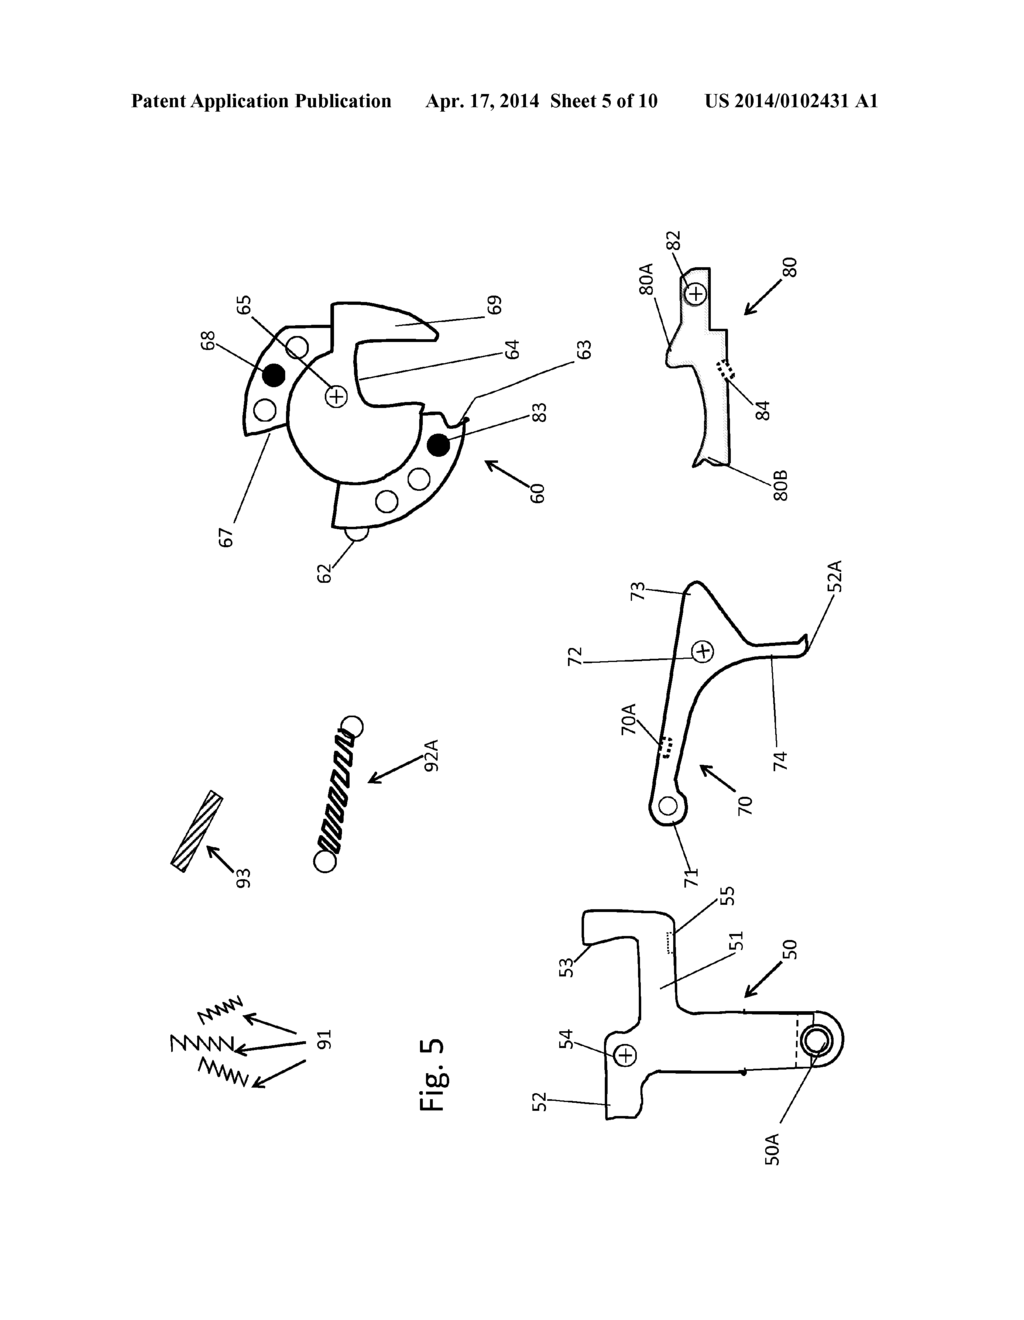 rotary cam release trigger device for a crossbow diagram Archery Diagram rotary cam release trigger device for a crossbow diagram schematic and image 06